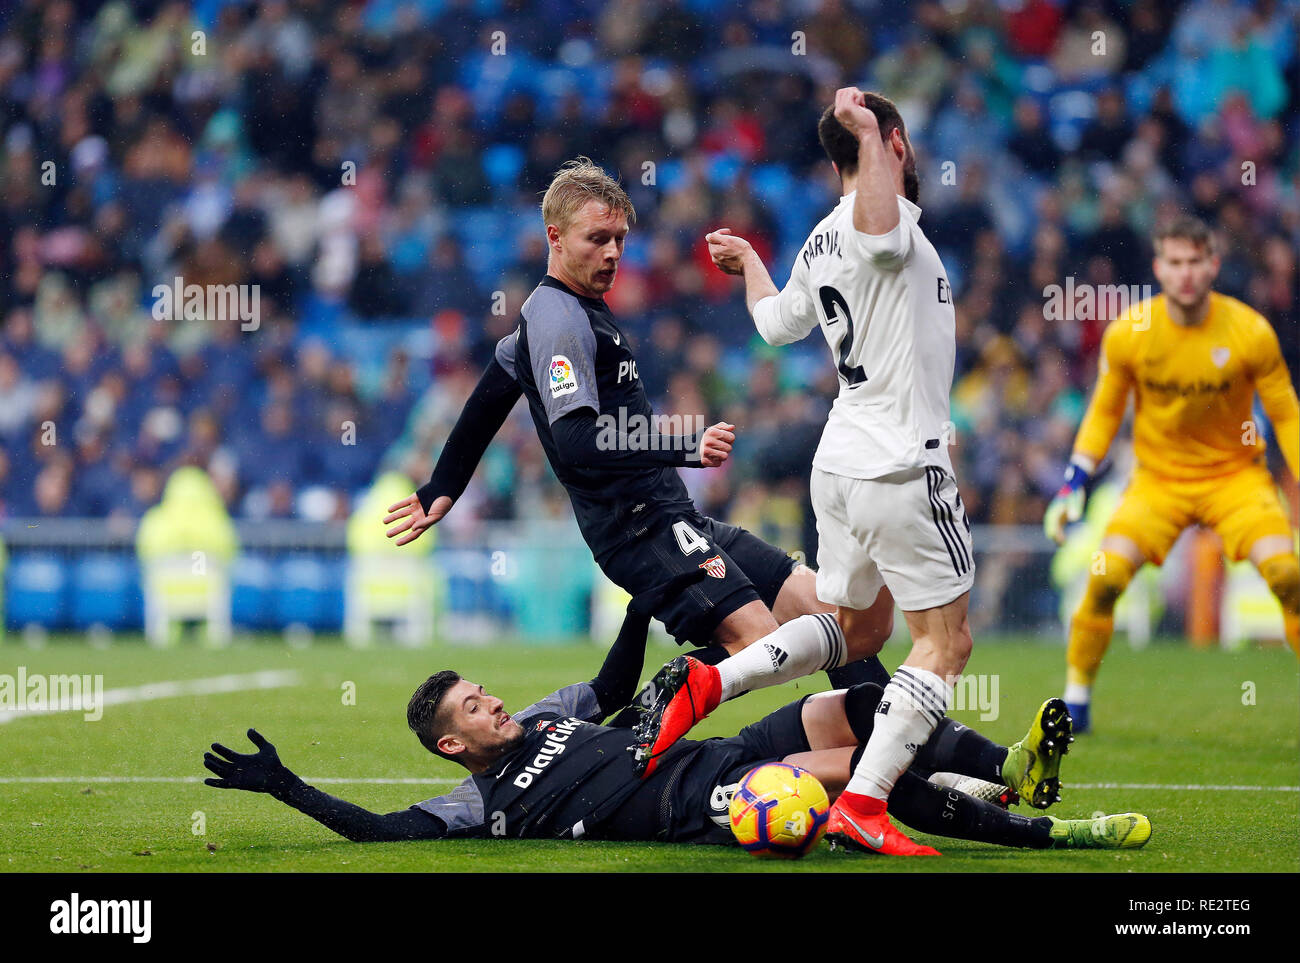 a4b89a80849 Dani Carvajal Stock Photos   Dani Carvajal Stock Images - Page 3 - Alamy